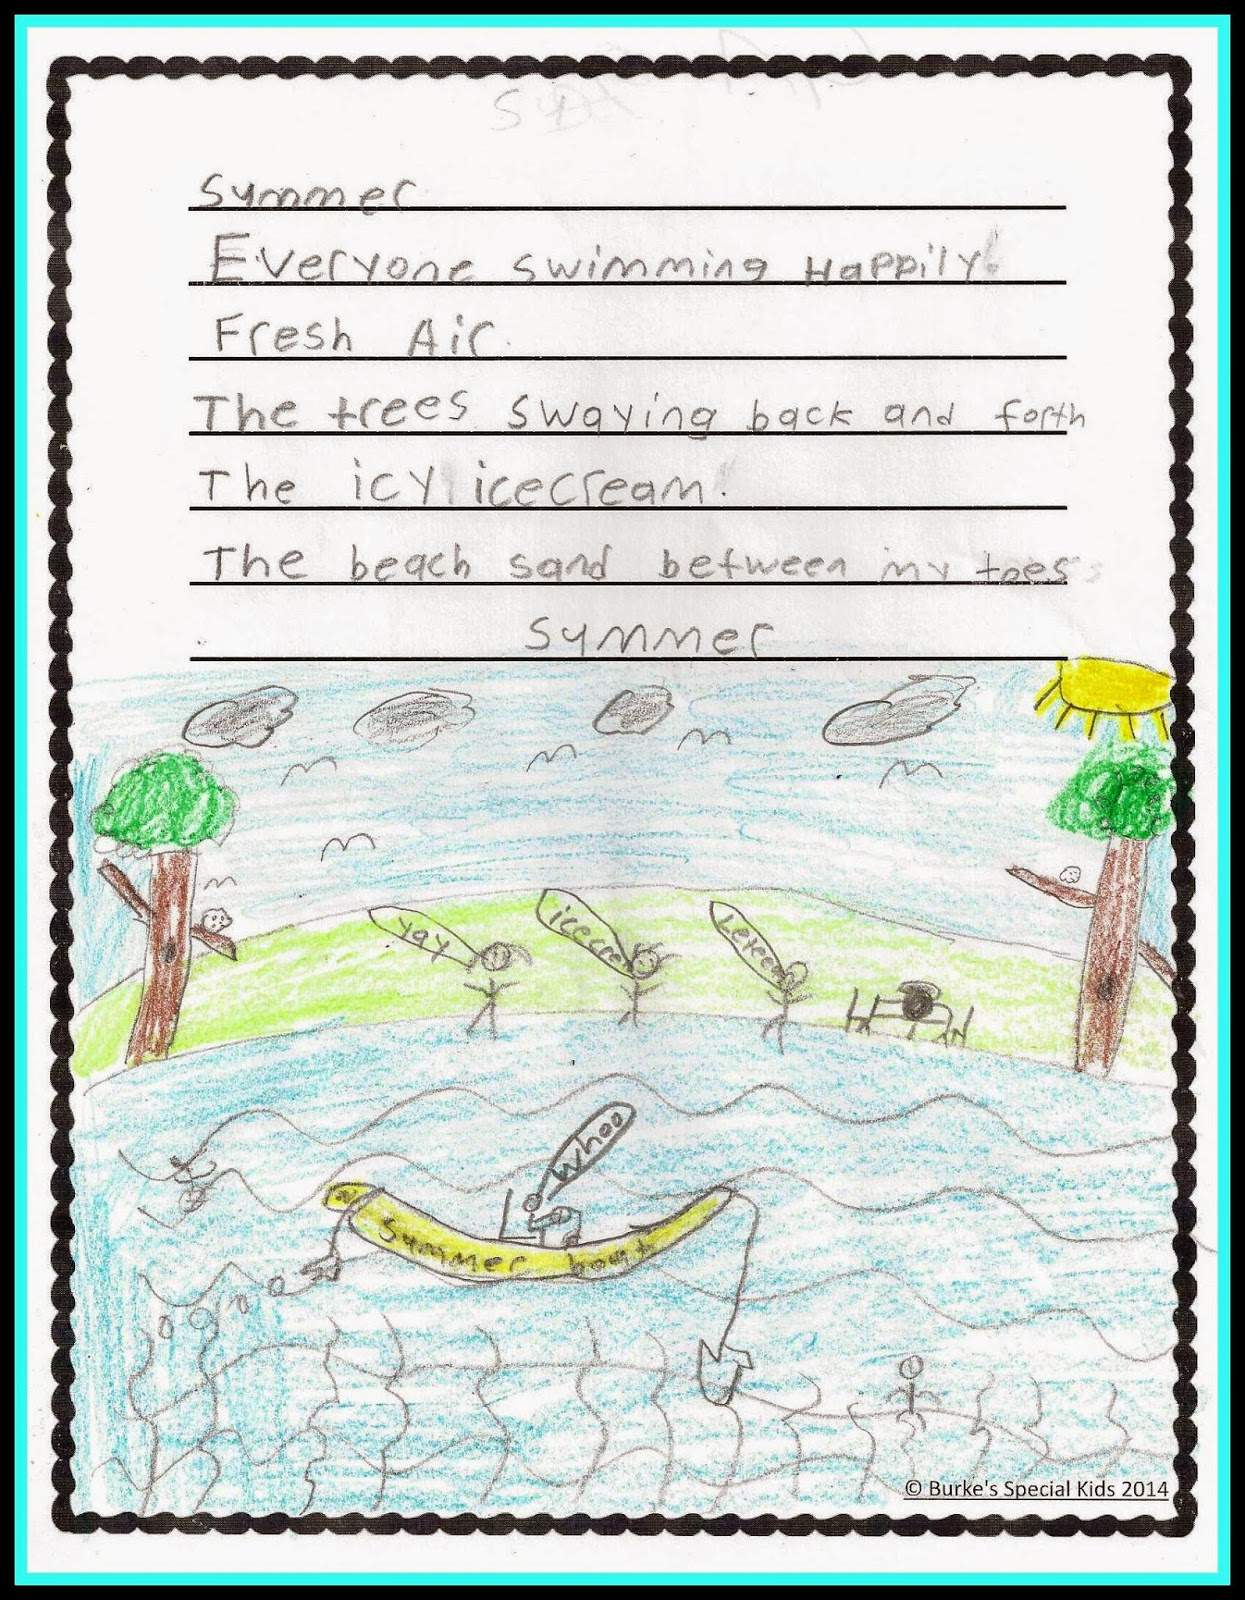 descriptive essay summer camp Summer vacation (persuasive essay)  remember how excited you'd be to finally get to do those summer things like ride bikes with your friends,.